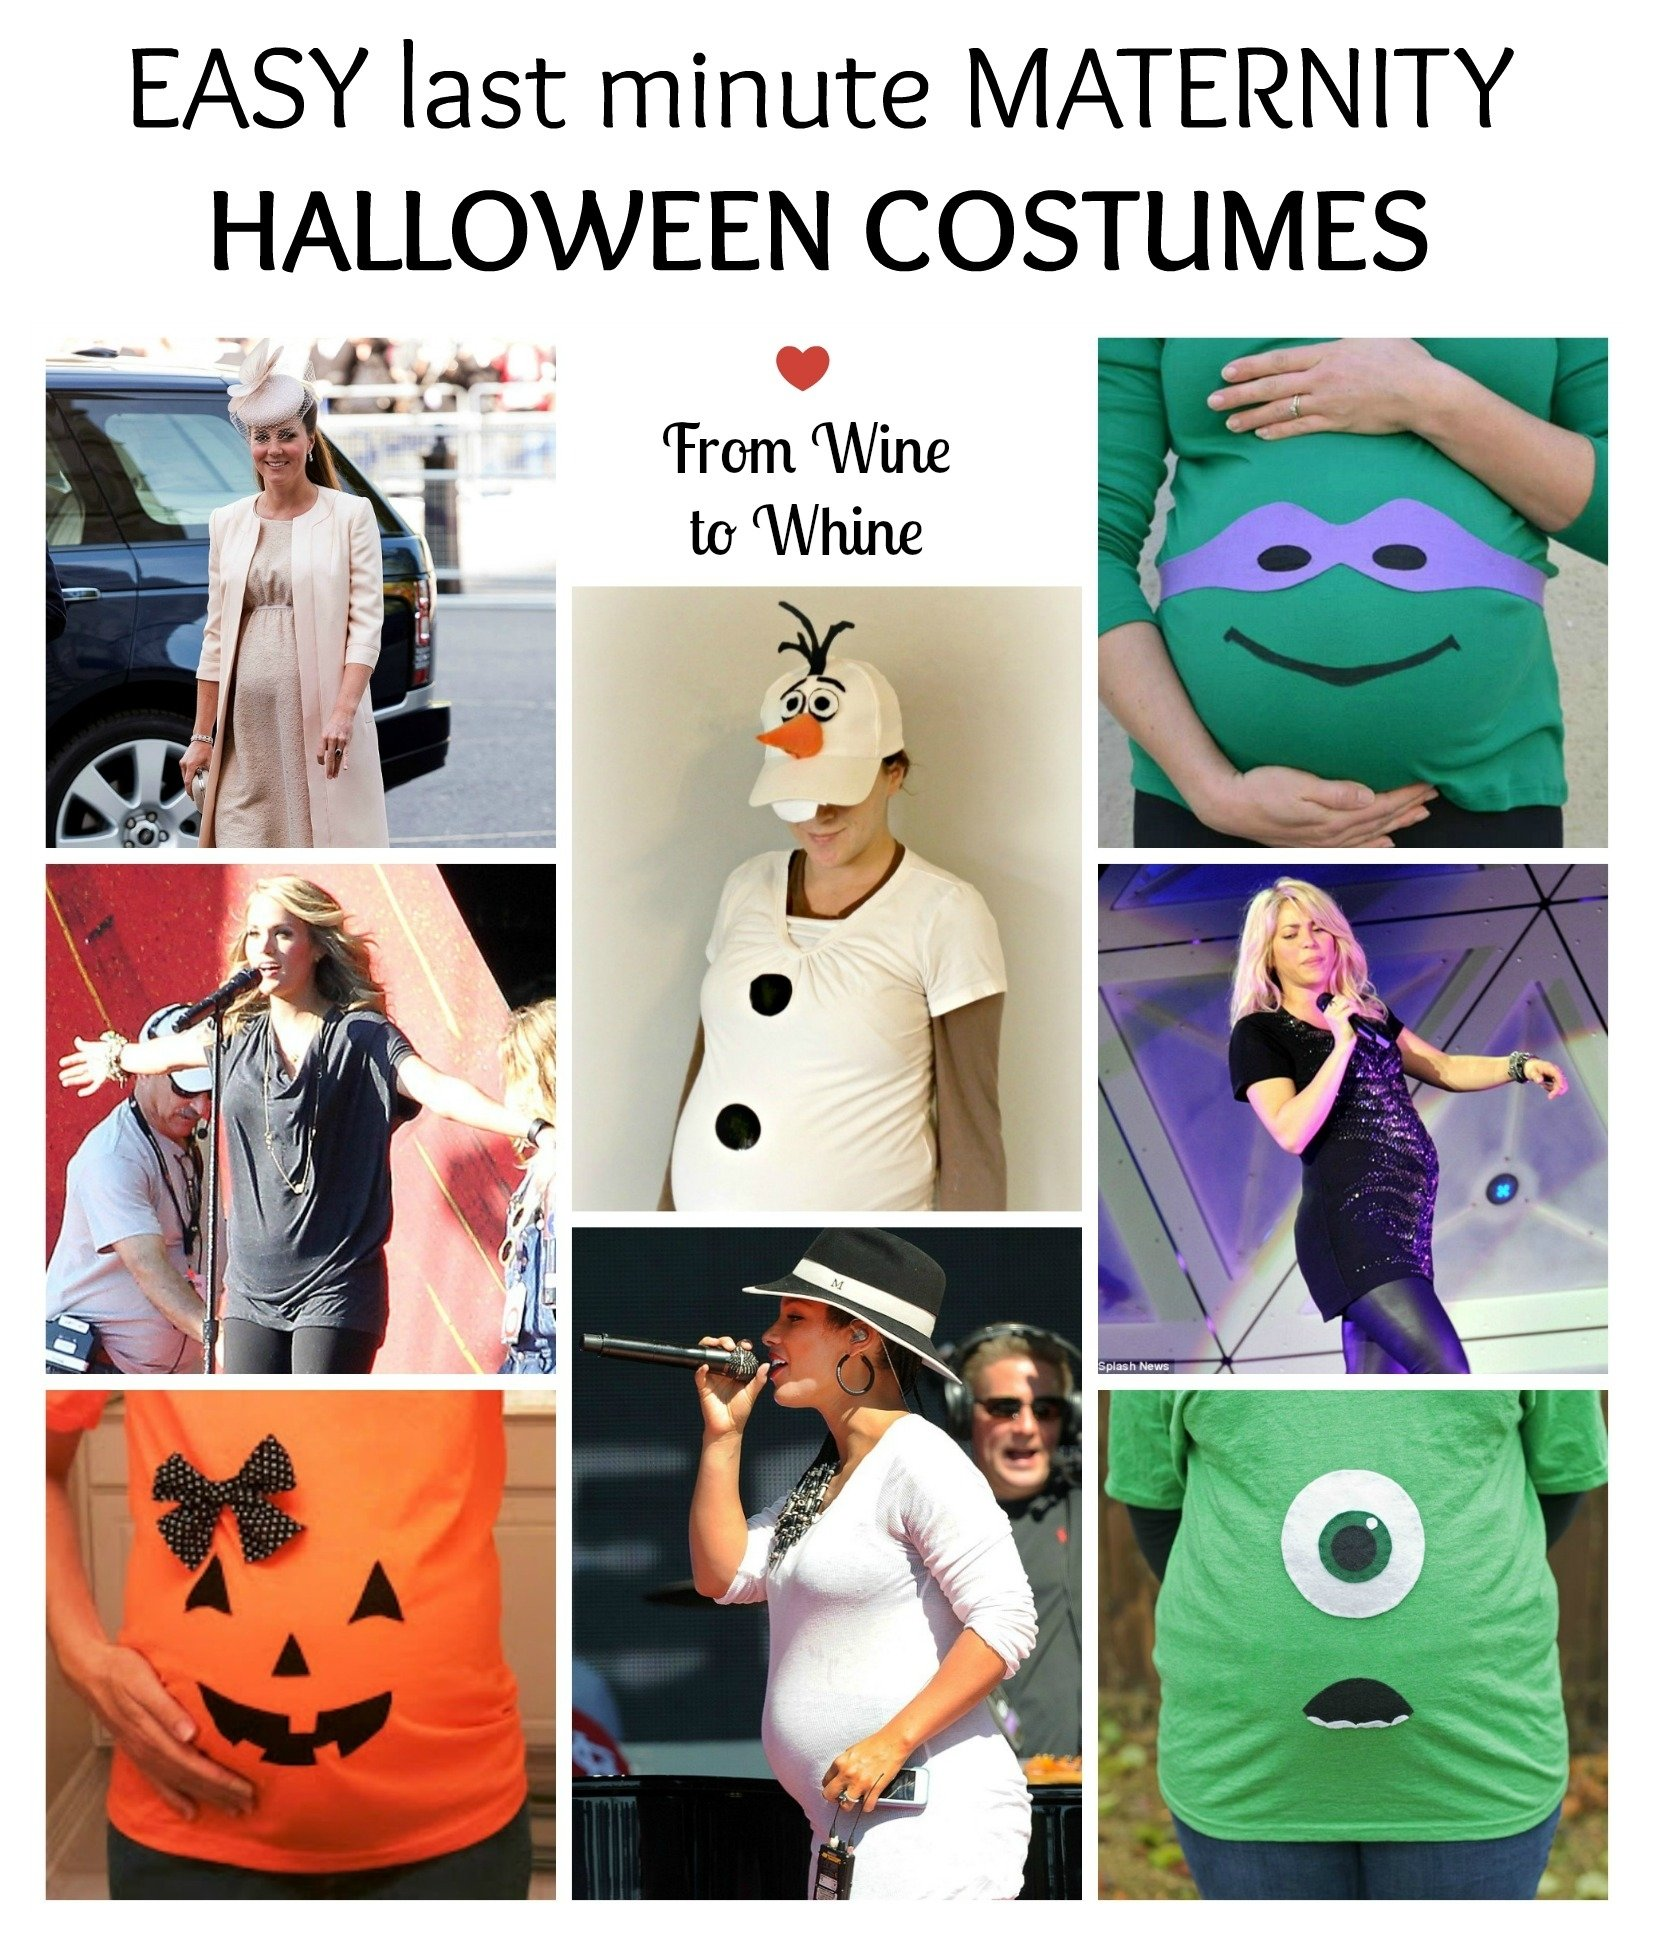 10 Perfect Halloween Costume Ideas For Pregnant easy last minute maternity halloween costumes from wine to whine